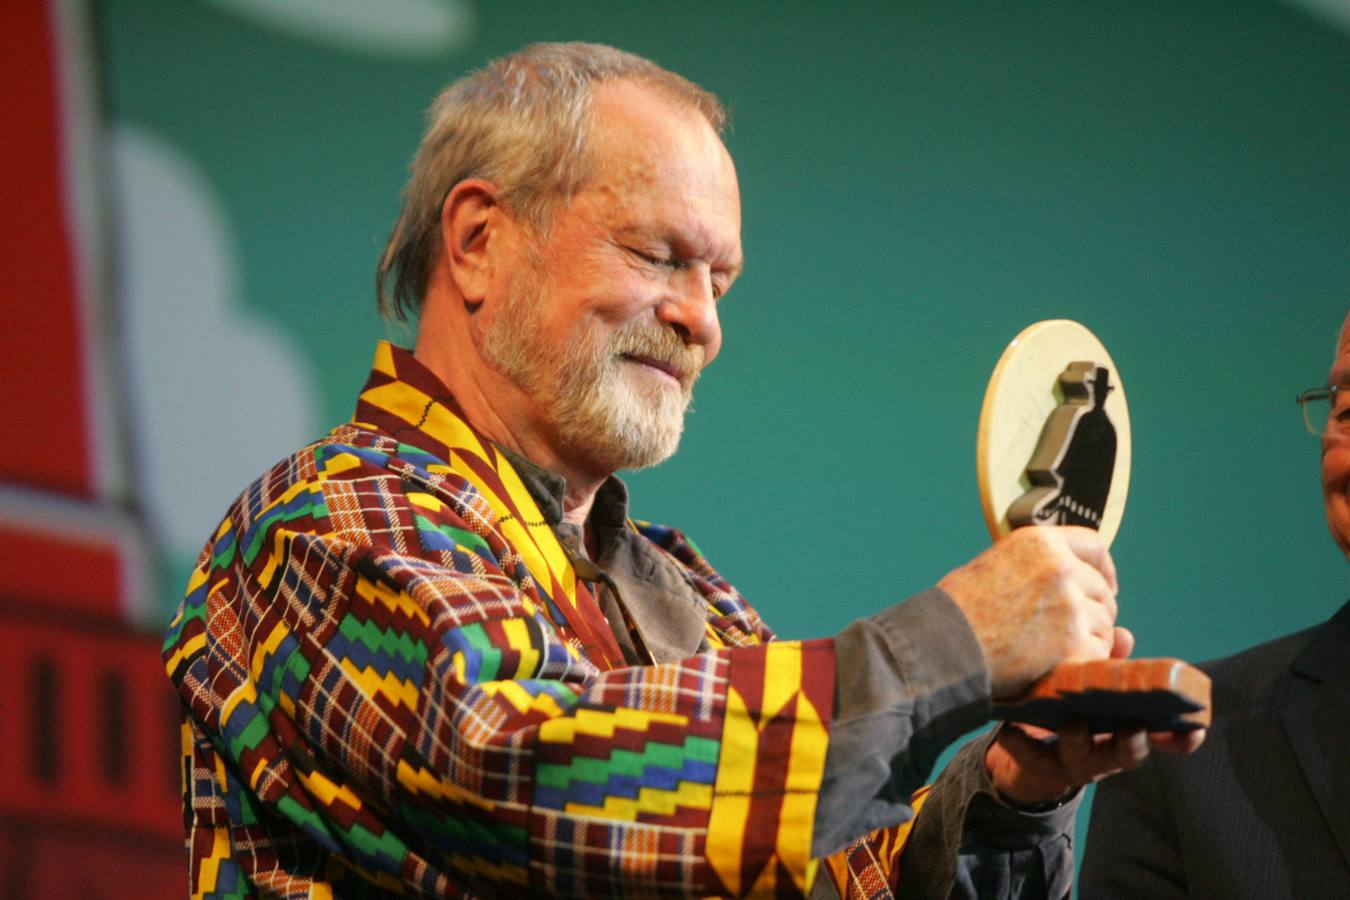 terry-gilliam-homenagem-premio-curta